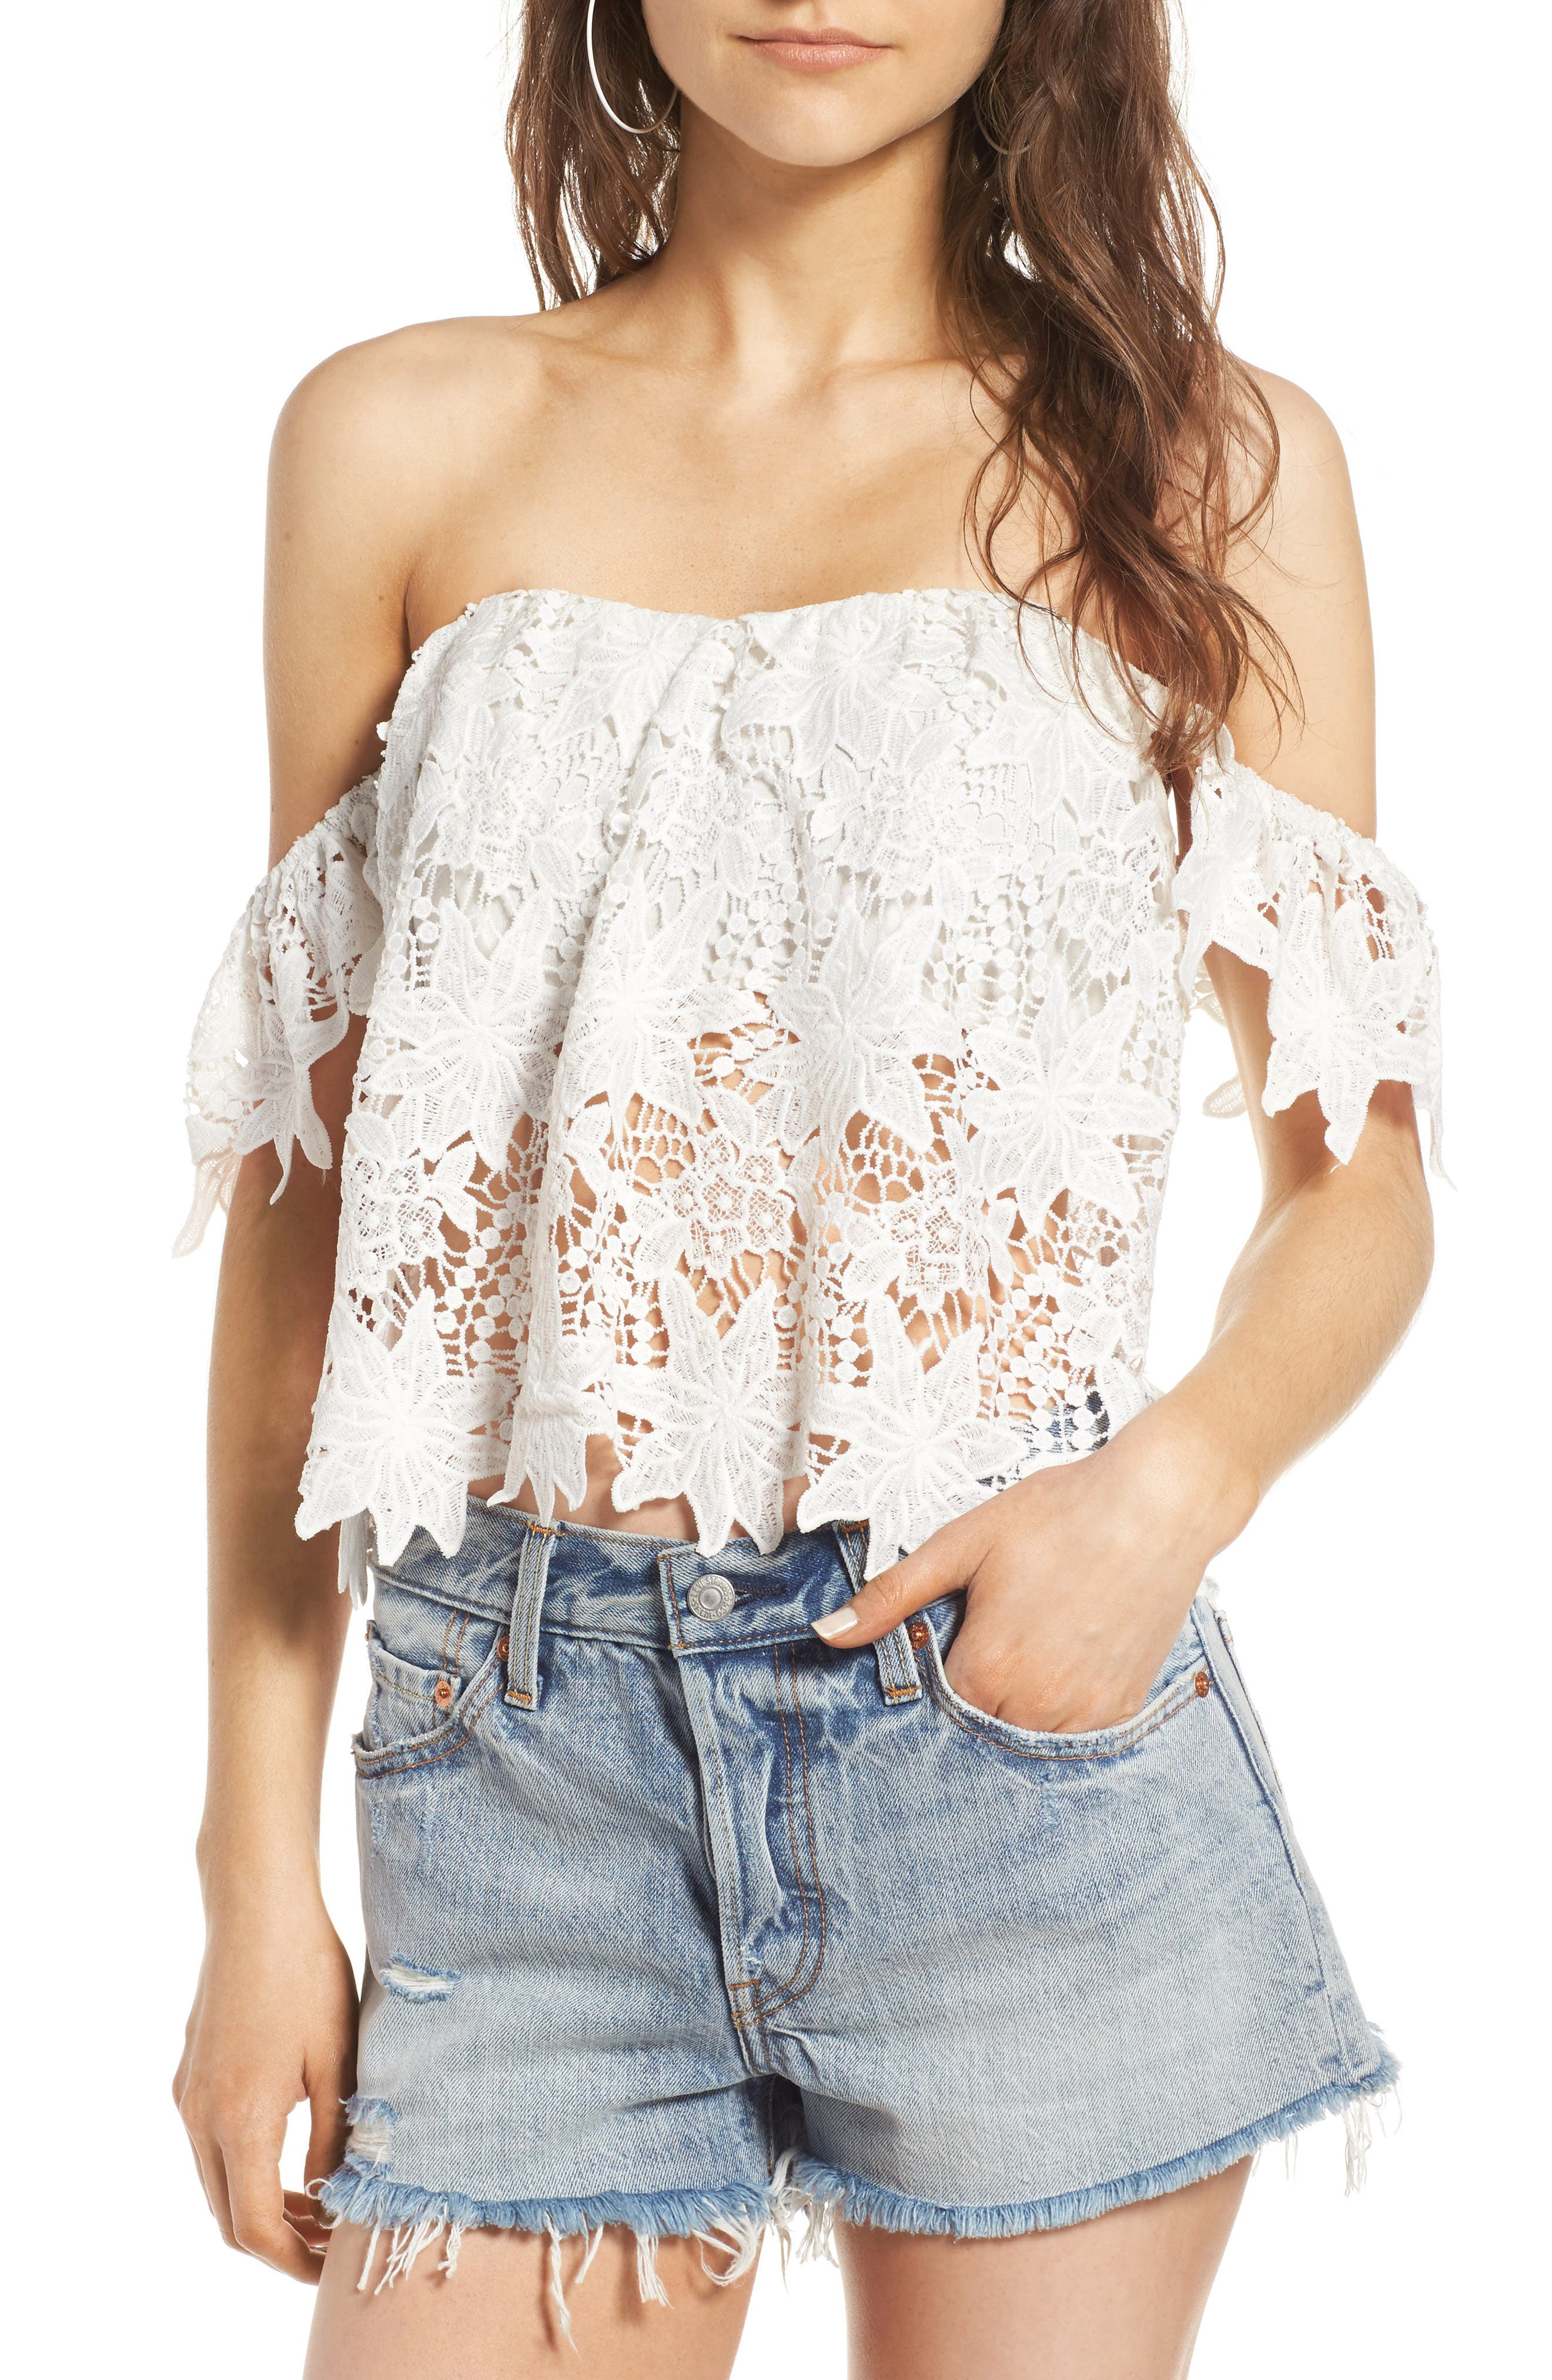 Main Image - ASTR the Label Adela Off the Shoulder Lace Top